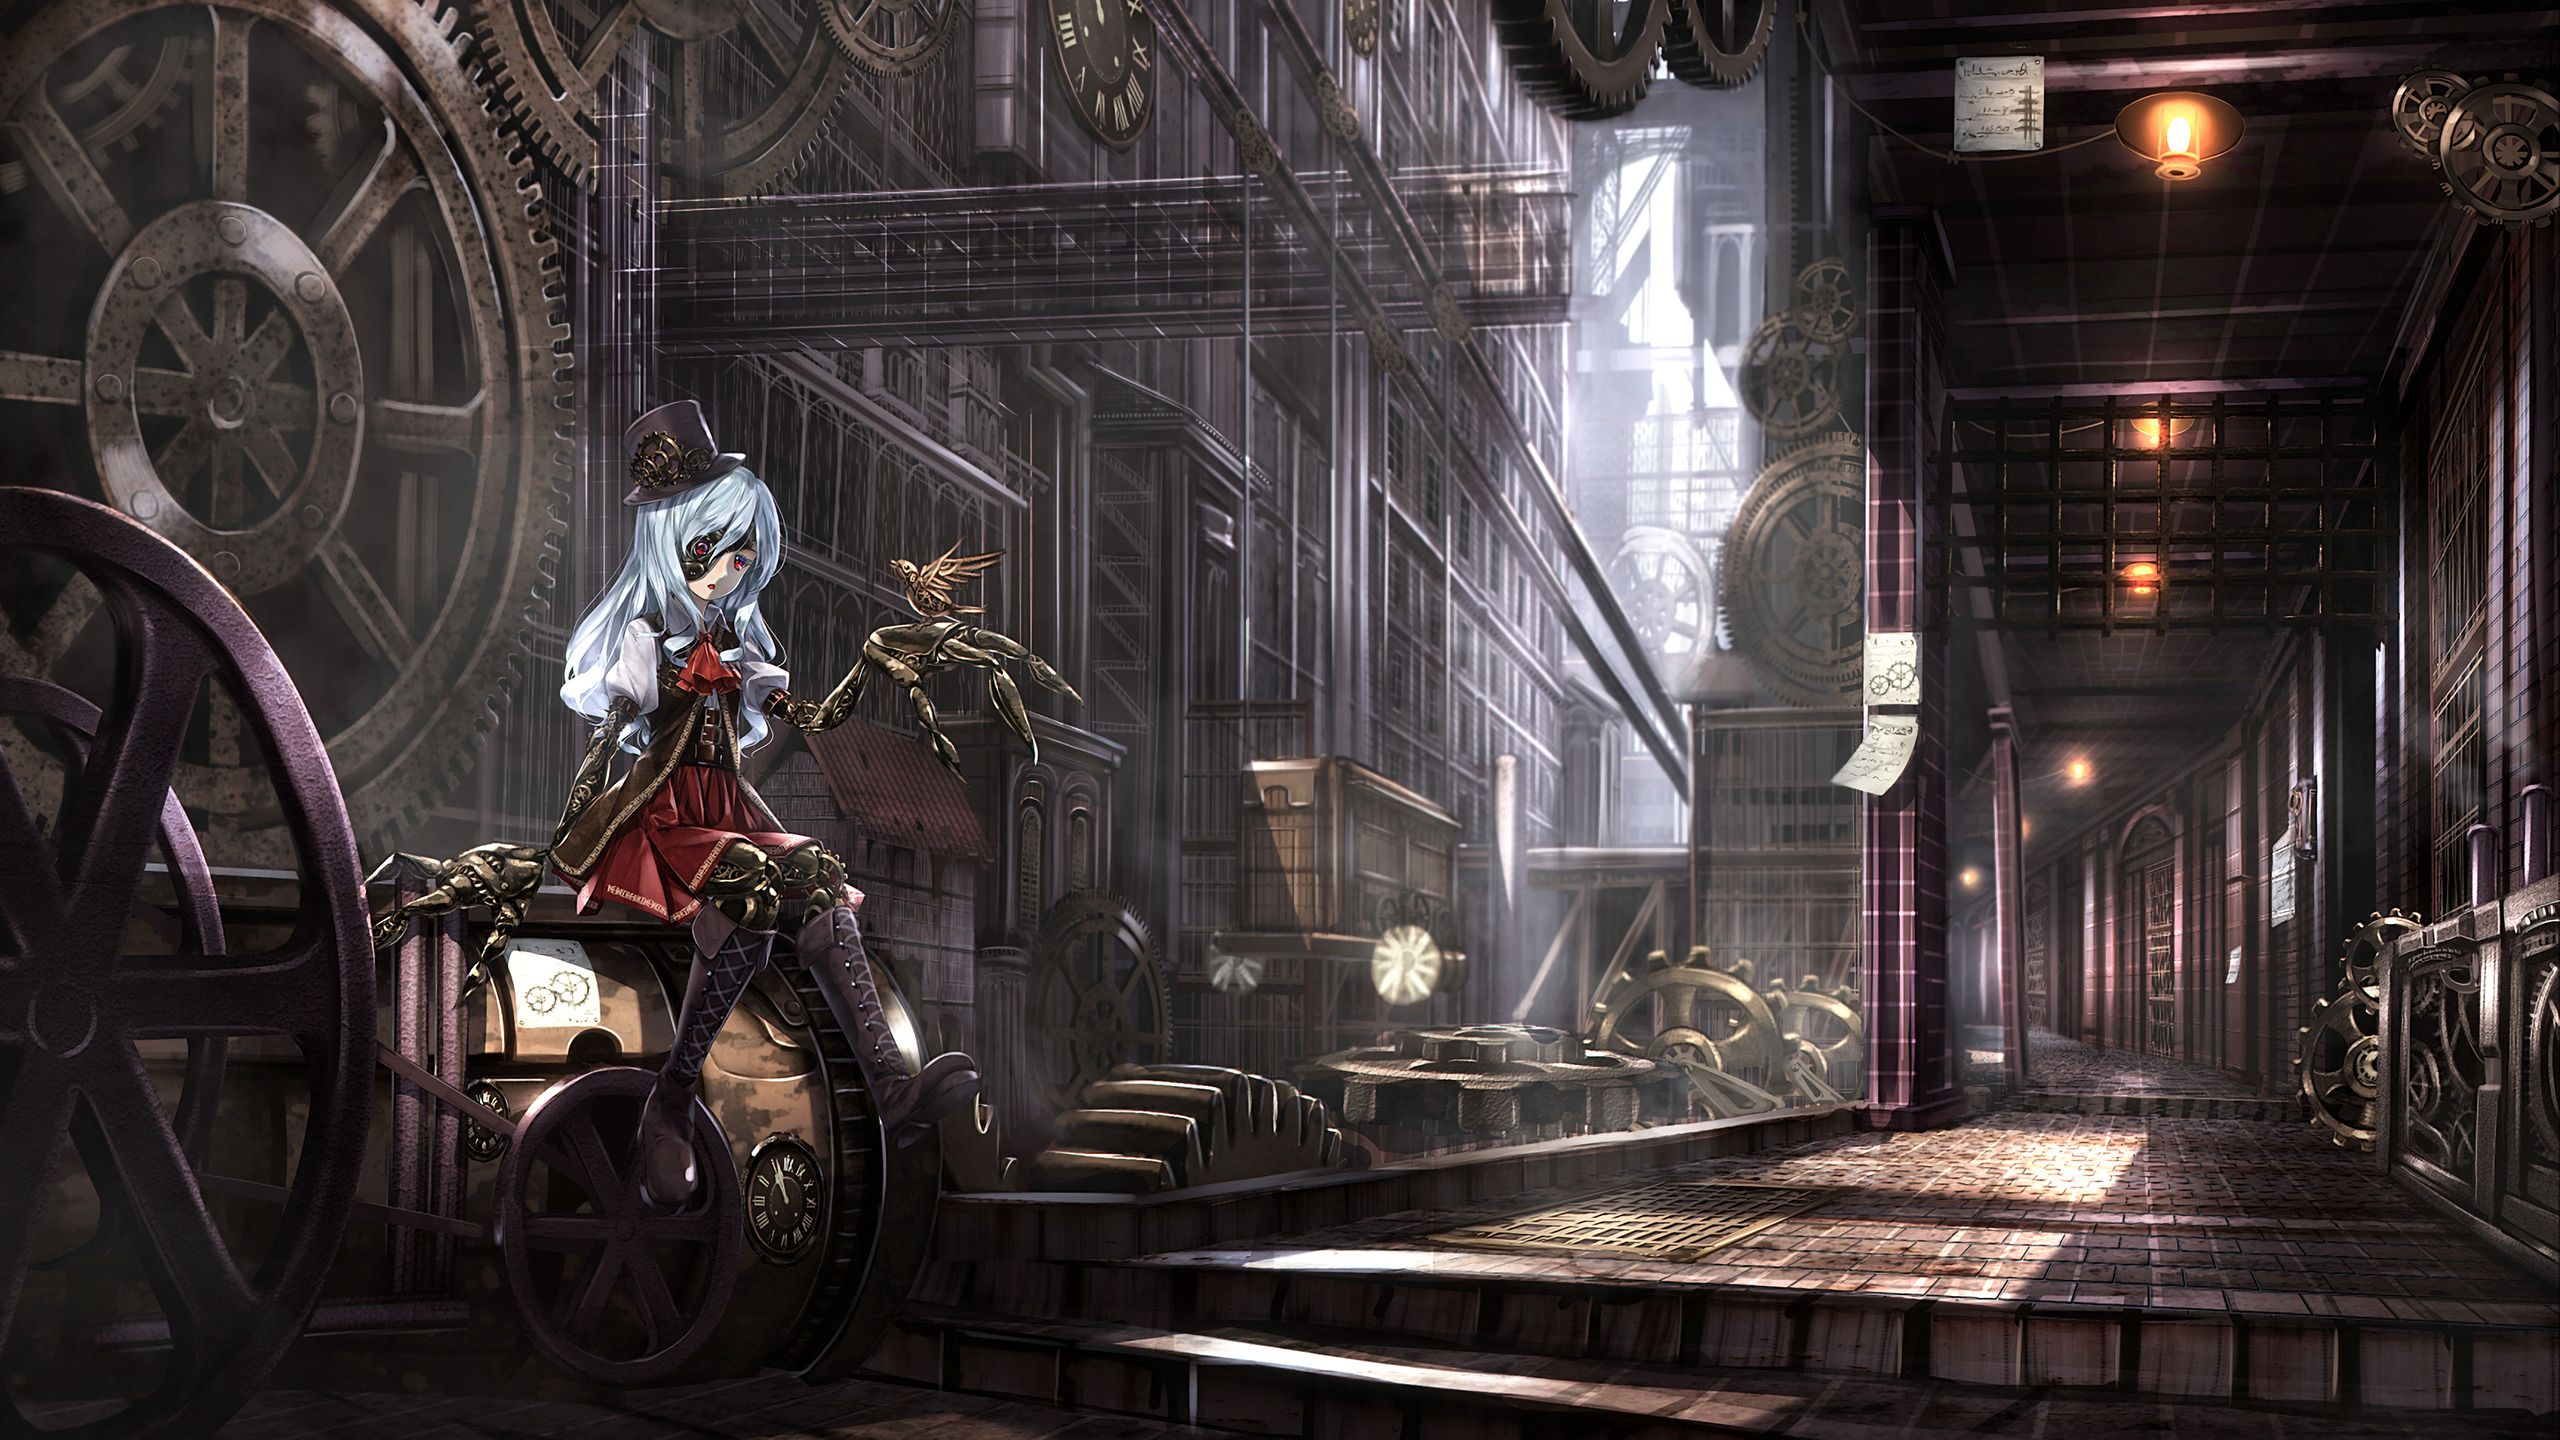 Preview And Download Wallpaper Hd Wallpapers Desktop Background Images Steampunk Wallpaper Download Wallpaper Hd Anime Wallpaper